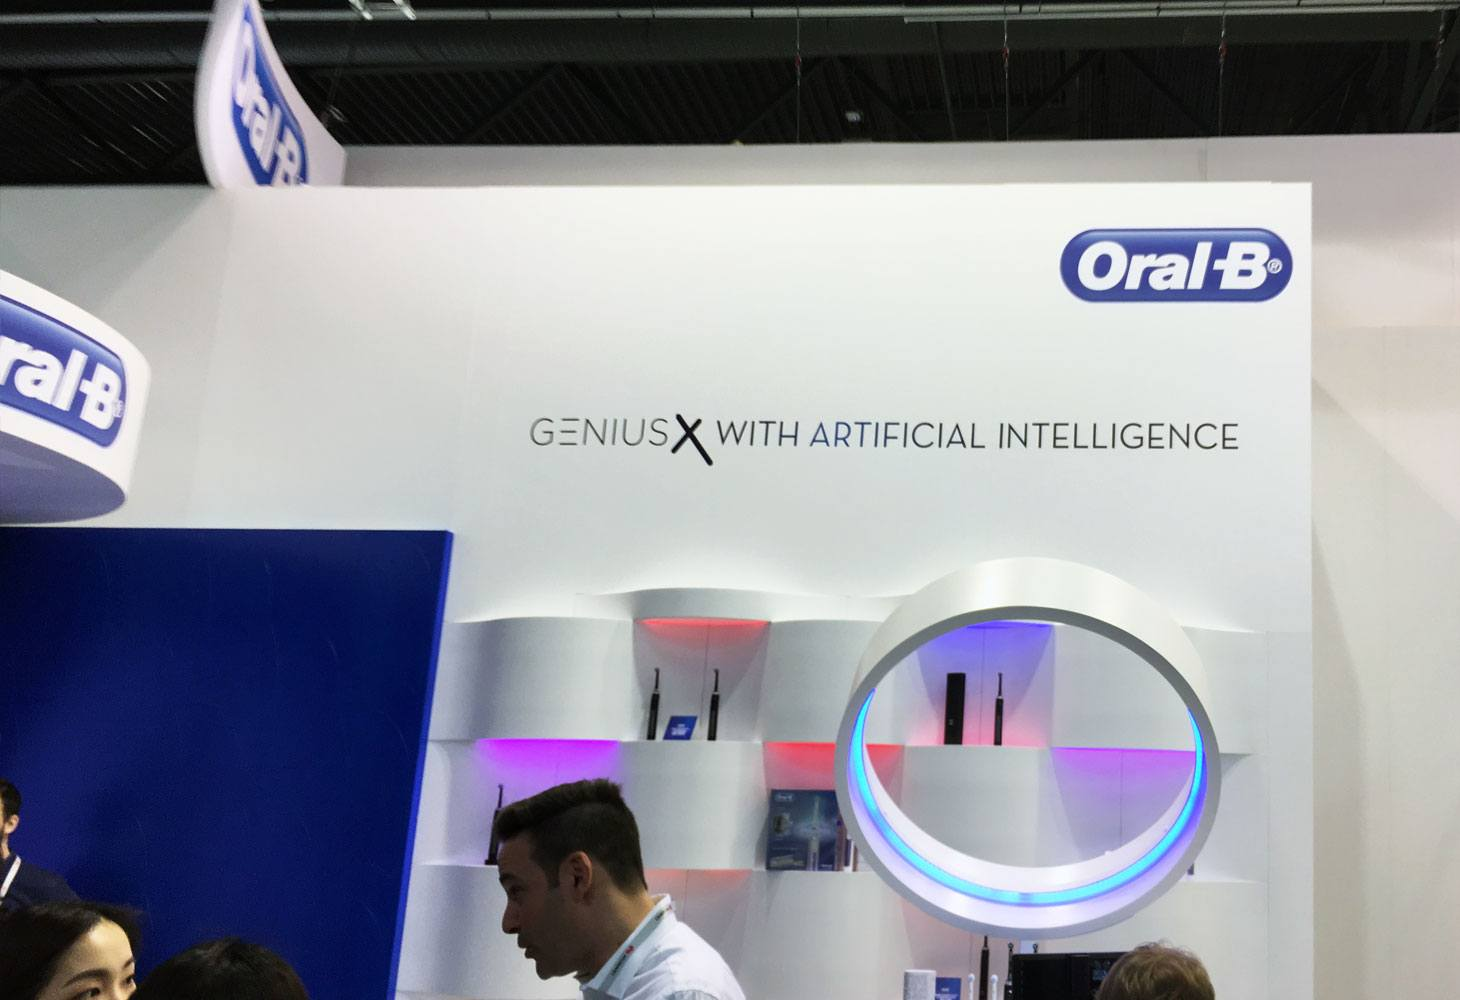 Al Mobile World Congress 2019, Oral-B ha presentato lo spazzolino Genius X con Intelligenza Artificiale.